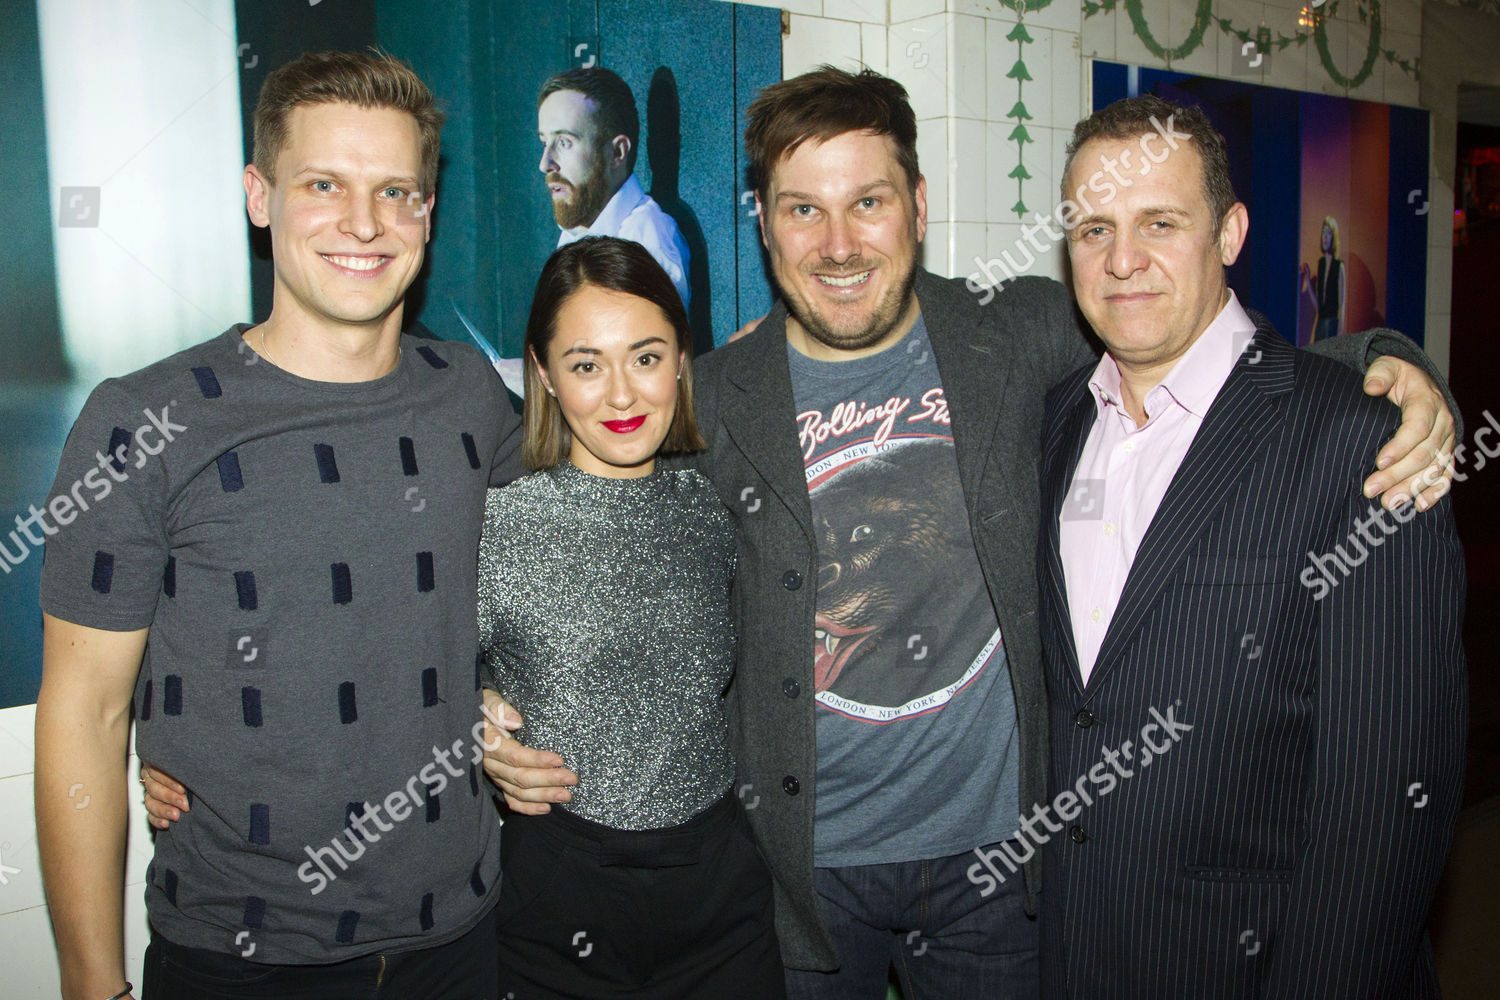 Stock photo of 'Bull' play, After Party, London, Britain - 15 Dec 2015